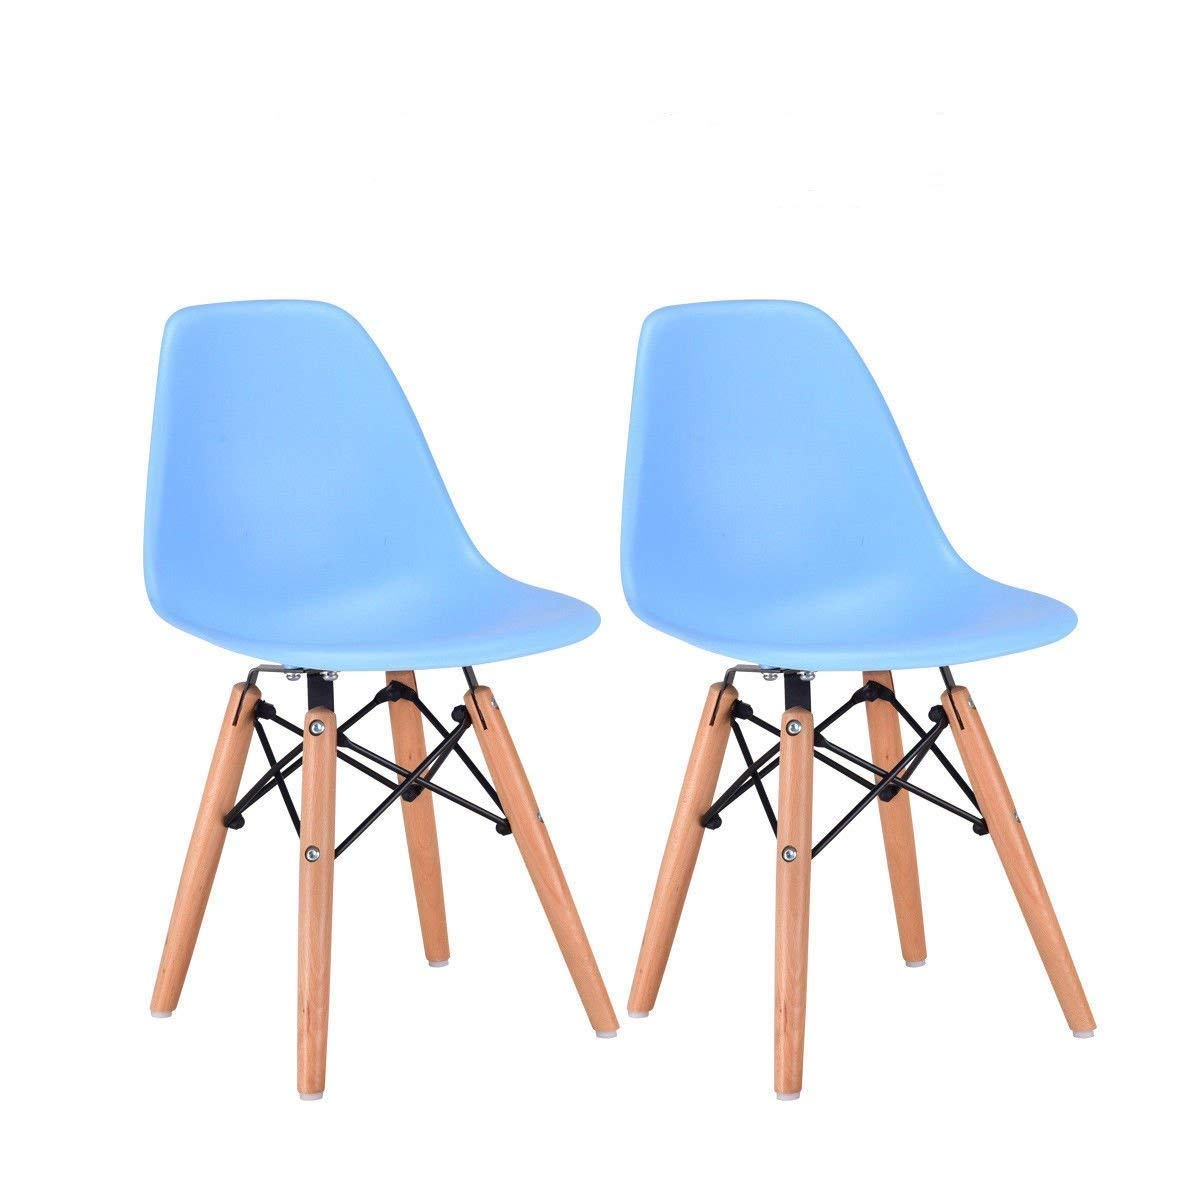 Costzon Set of 2 Kids Dining Chair, Modern Molded Shell Chair with Dowel Wood Eiffel Legs Blue